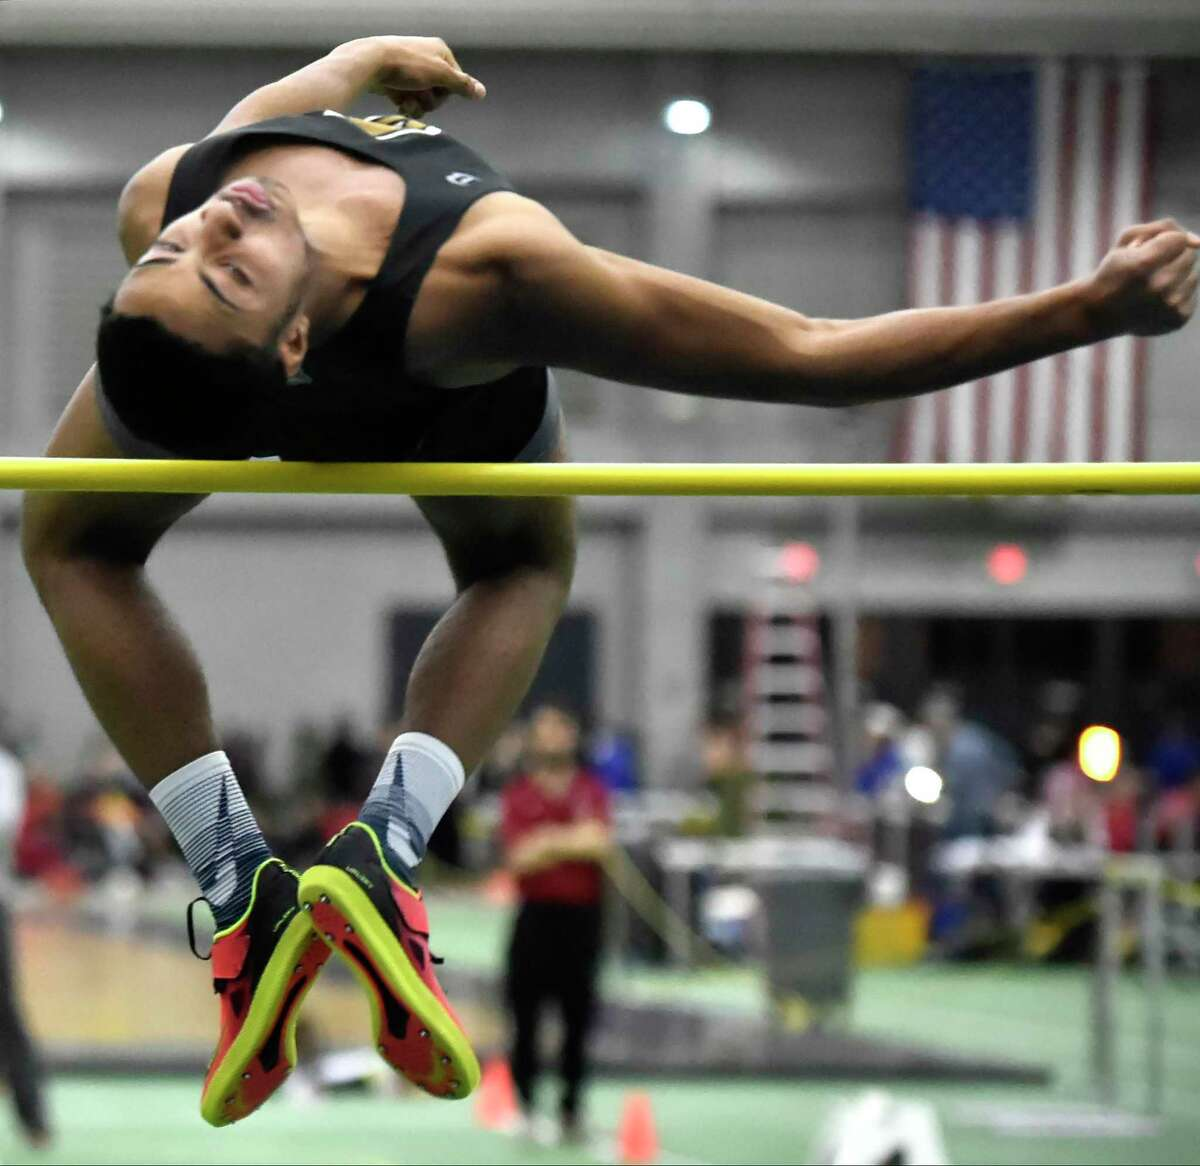 New Haven, Connecticut - Friday, February 8, 2019: Shaun Graham of Amity H.S. wins the high jump during the CIAC Class L Boys and Girls Indoor Track state championship Friday at the Floyd Little Athletic Center in New Haven .